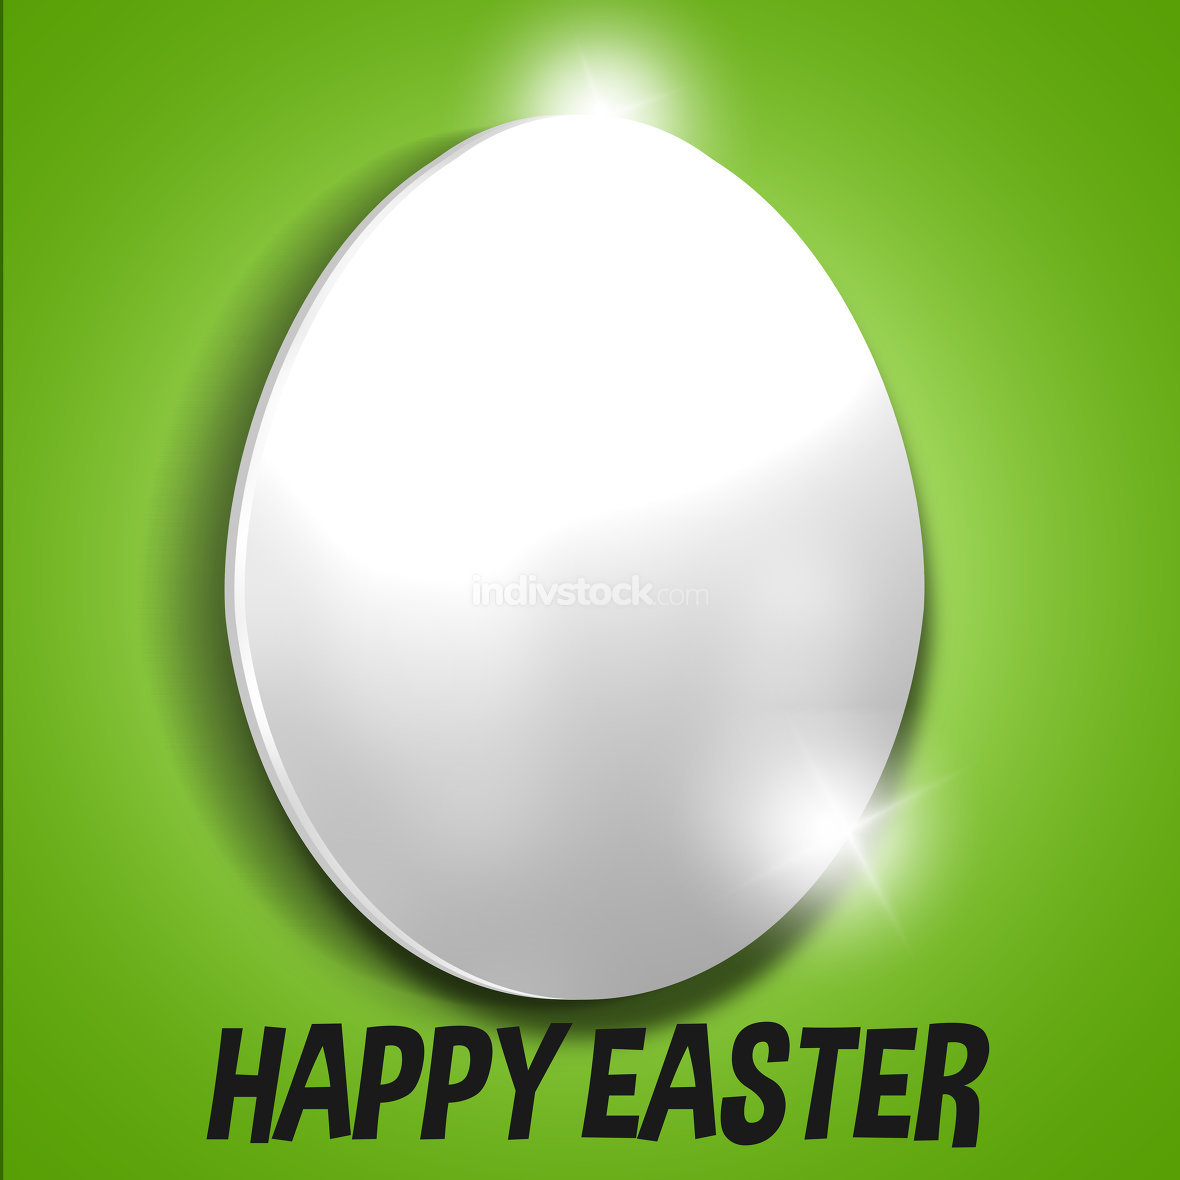 happy easter green backgorund